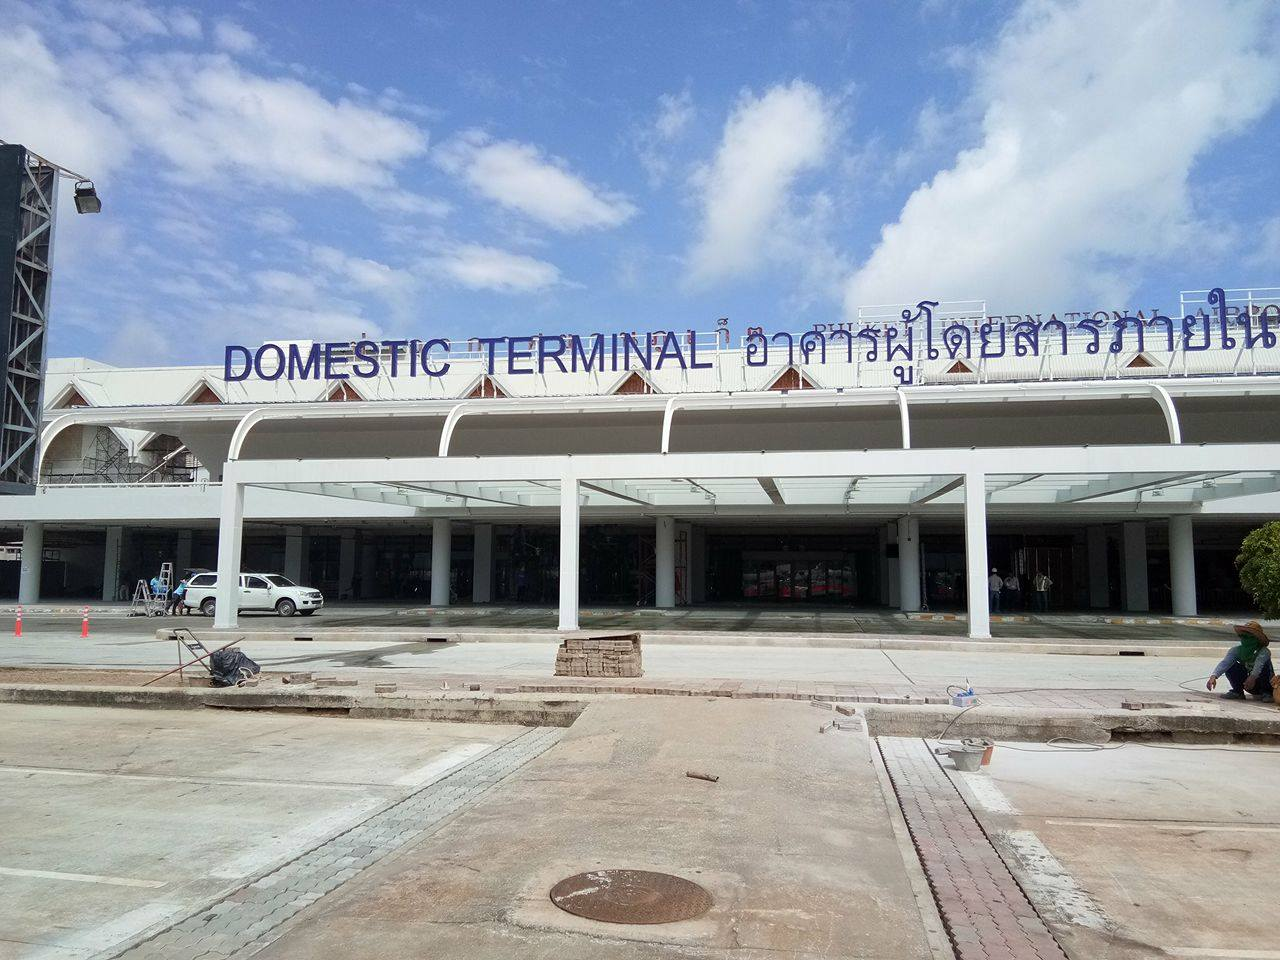 New domestic terminal arrival & departure changes from tomorrow. | The Thaiger